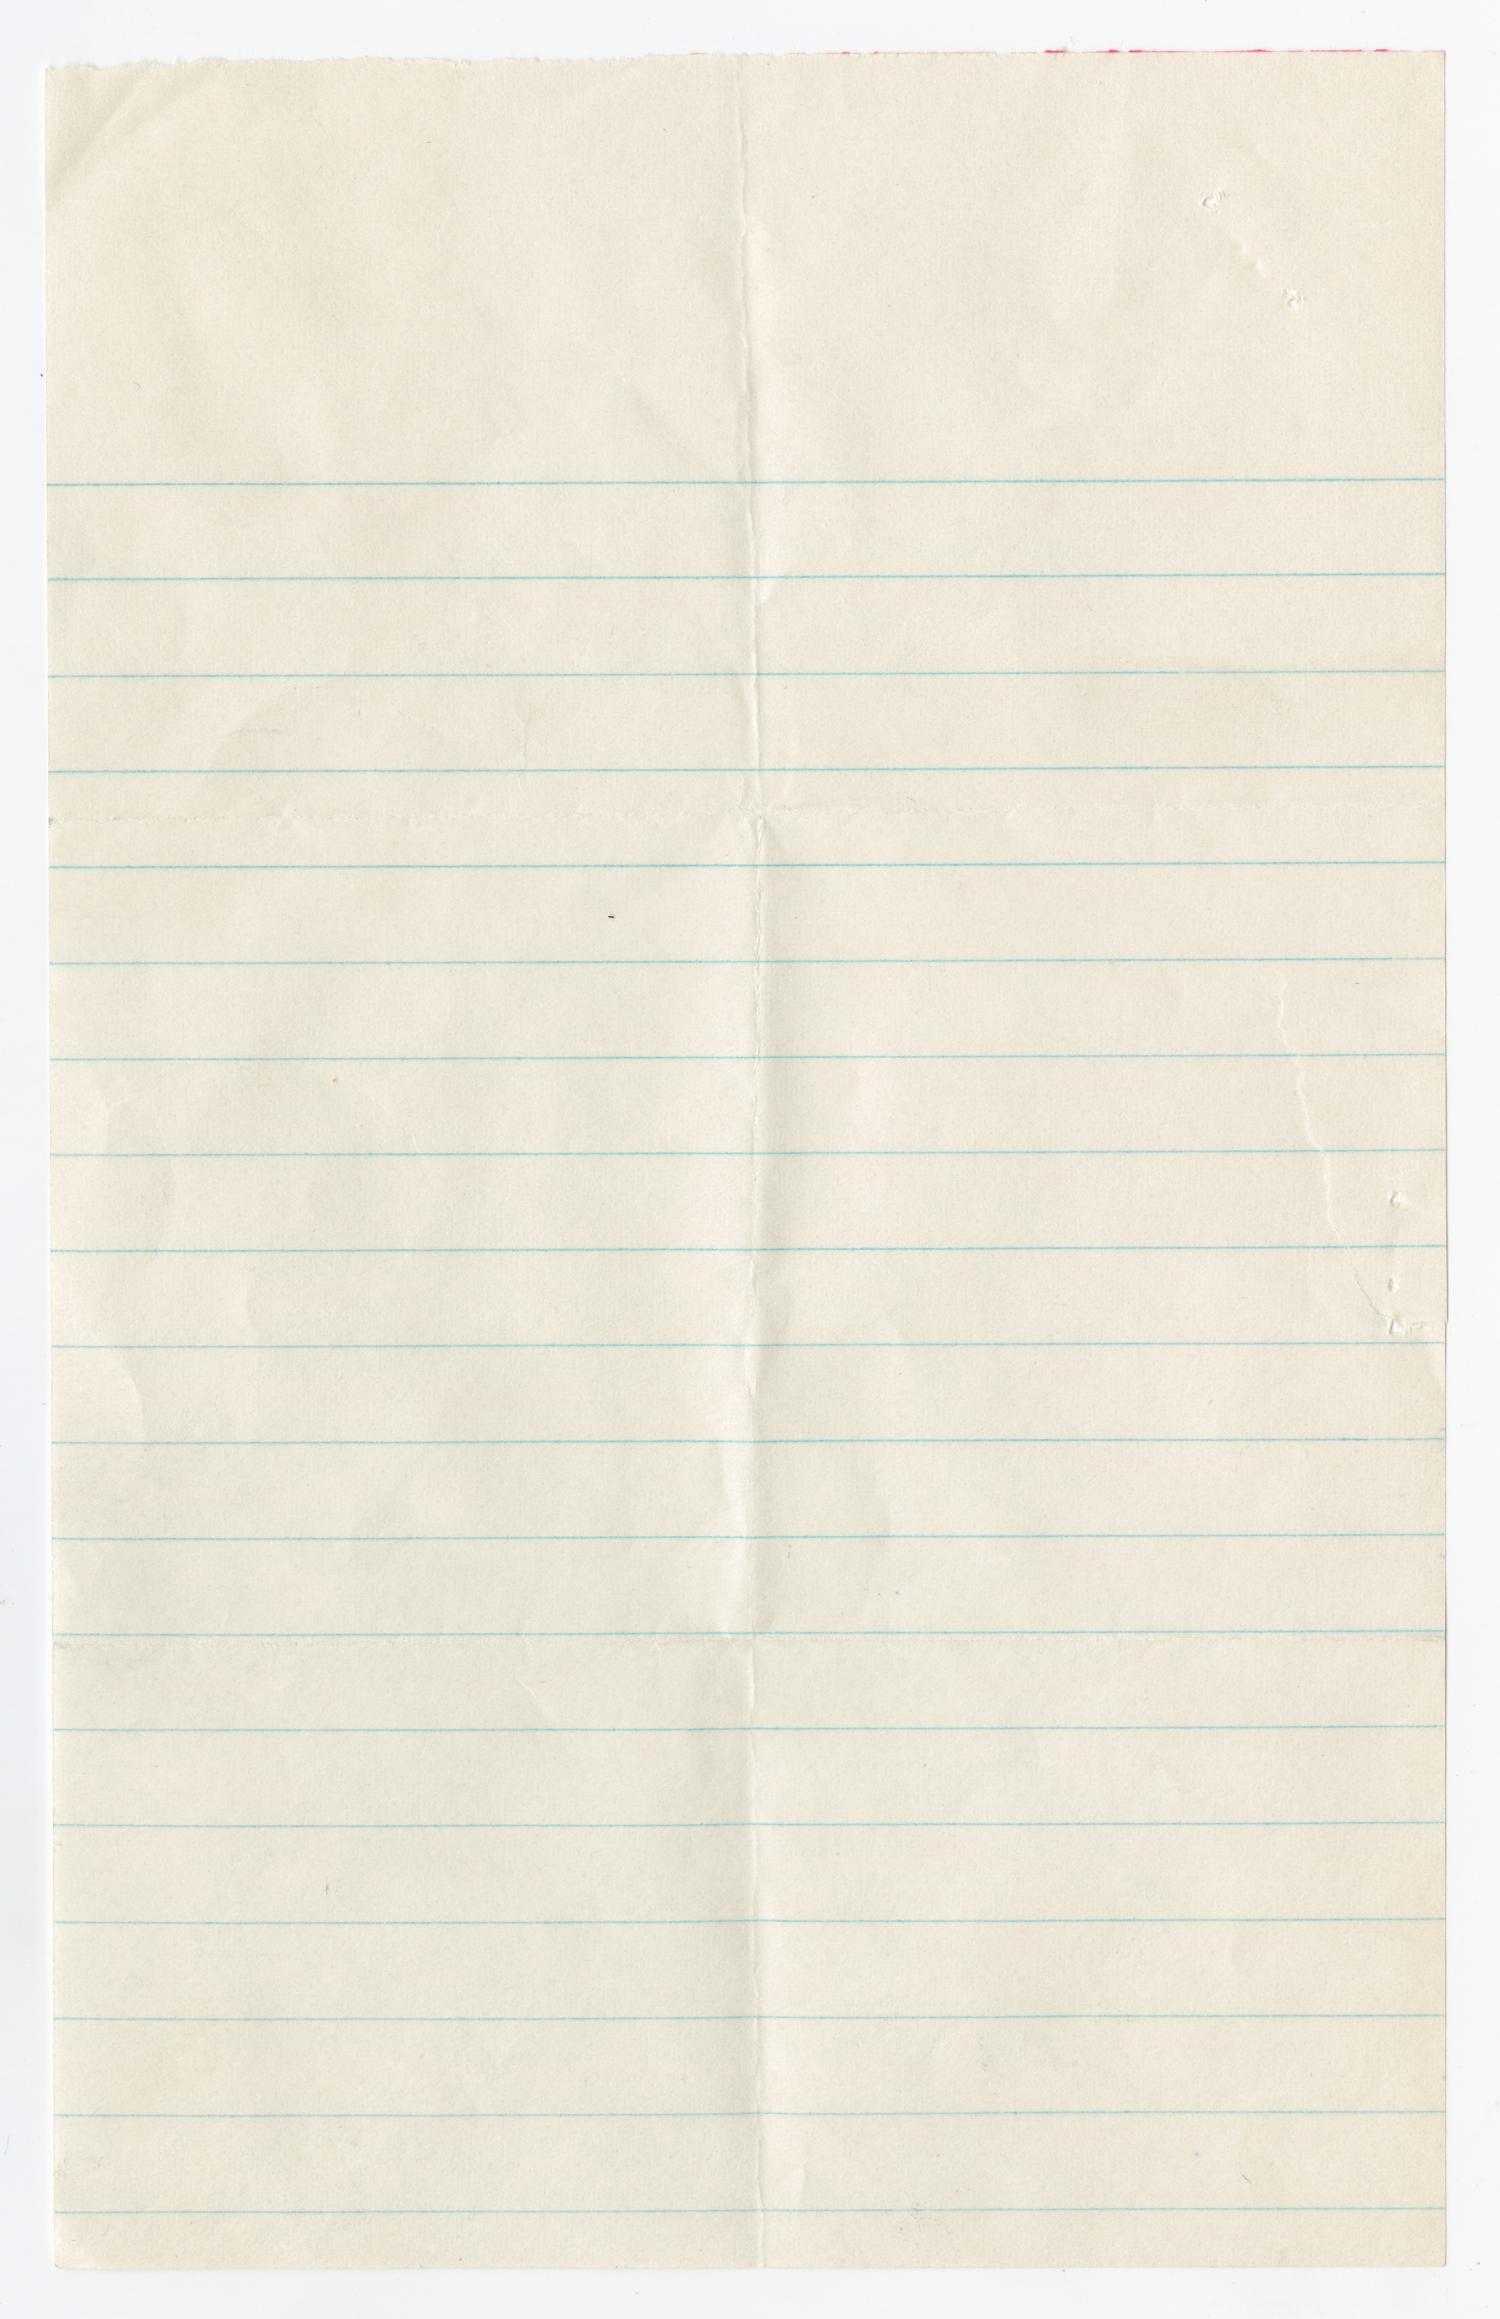 Blank Piece of Lined Paper The Portal to Texas History – Lined Letter Paper